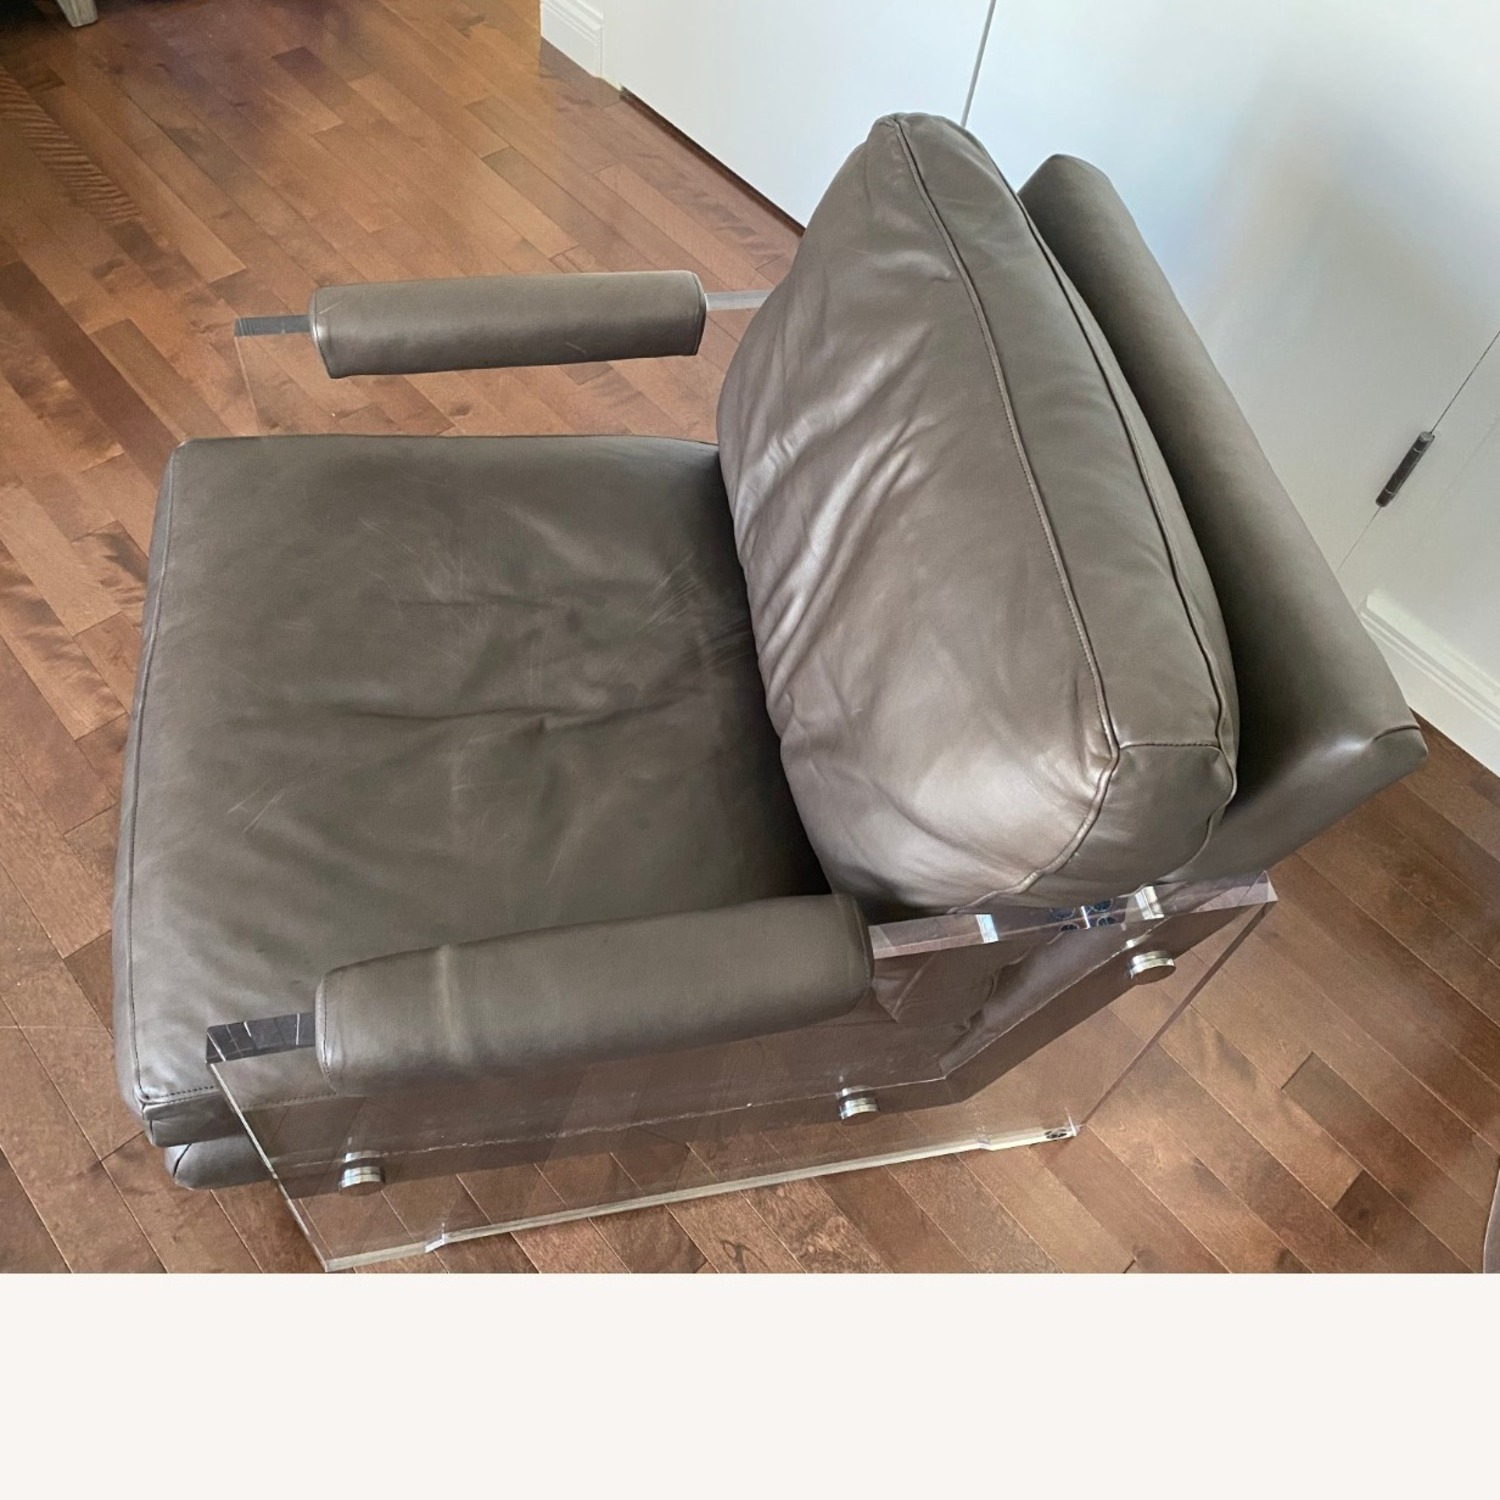 Restoration Hardware Leather Luca Chair - image-19